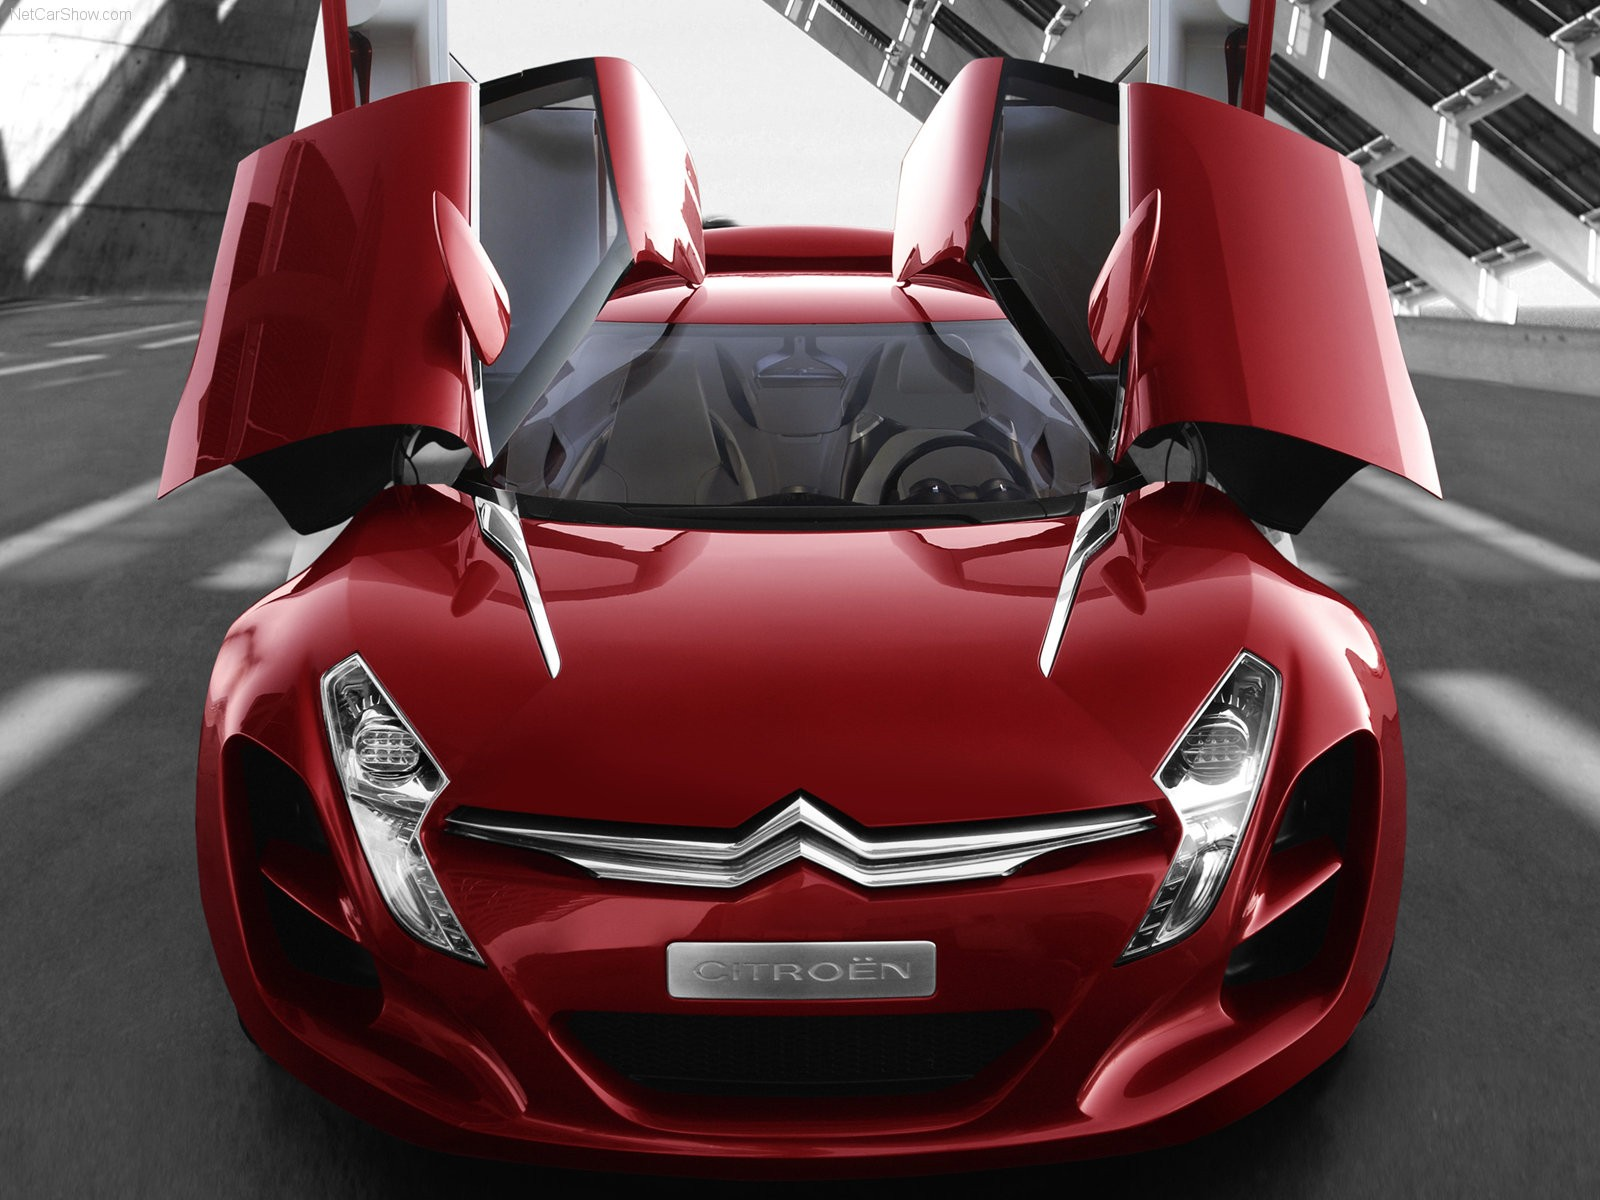 Pictures Gallery Of CITROEN HD Car Wallpapers For Windows 7 File Size 159668 Bytes Dimensions 1280 X 1040 Pixels